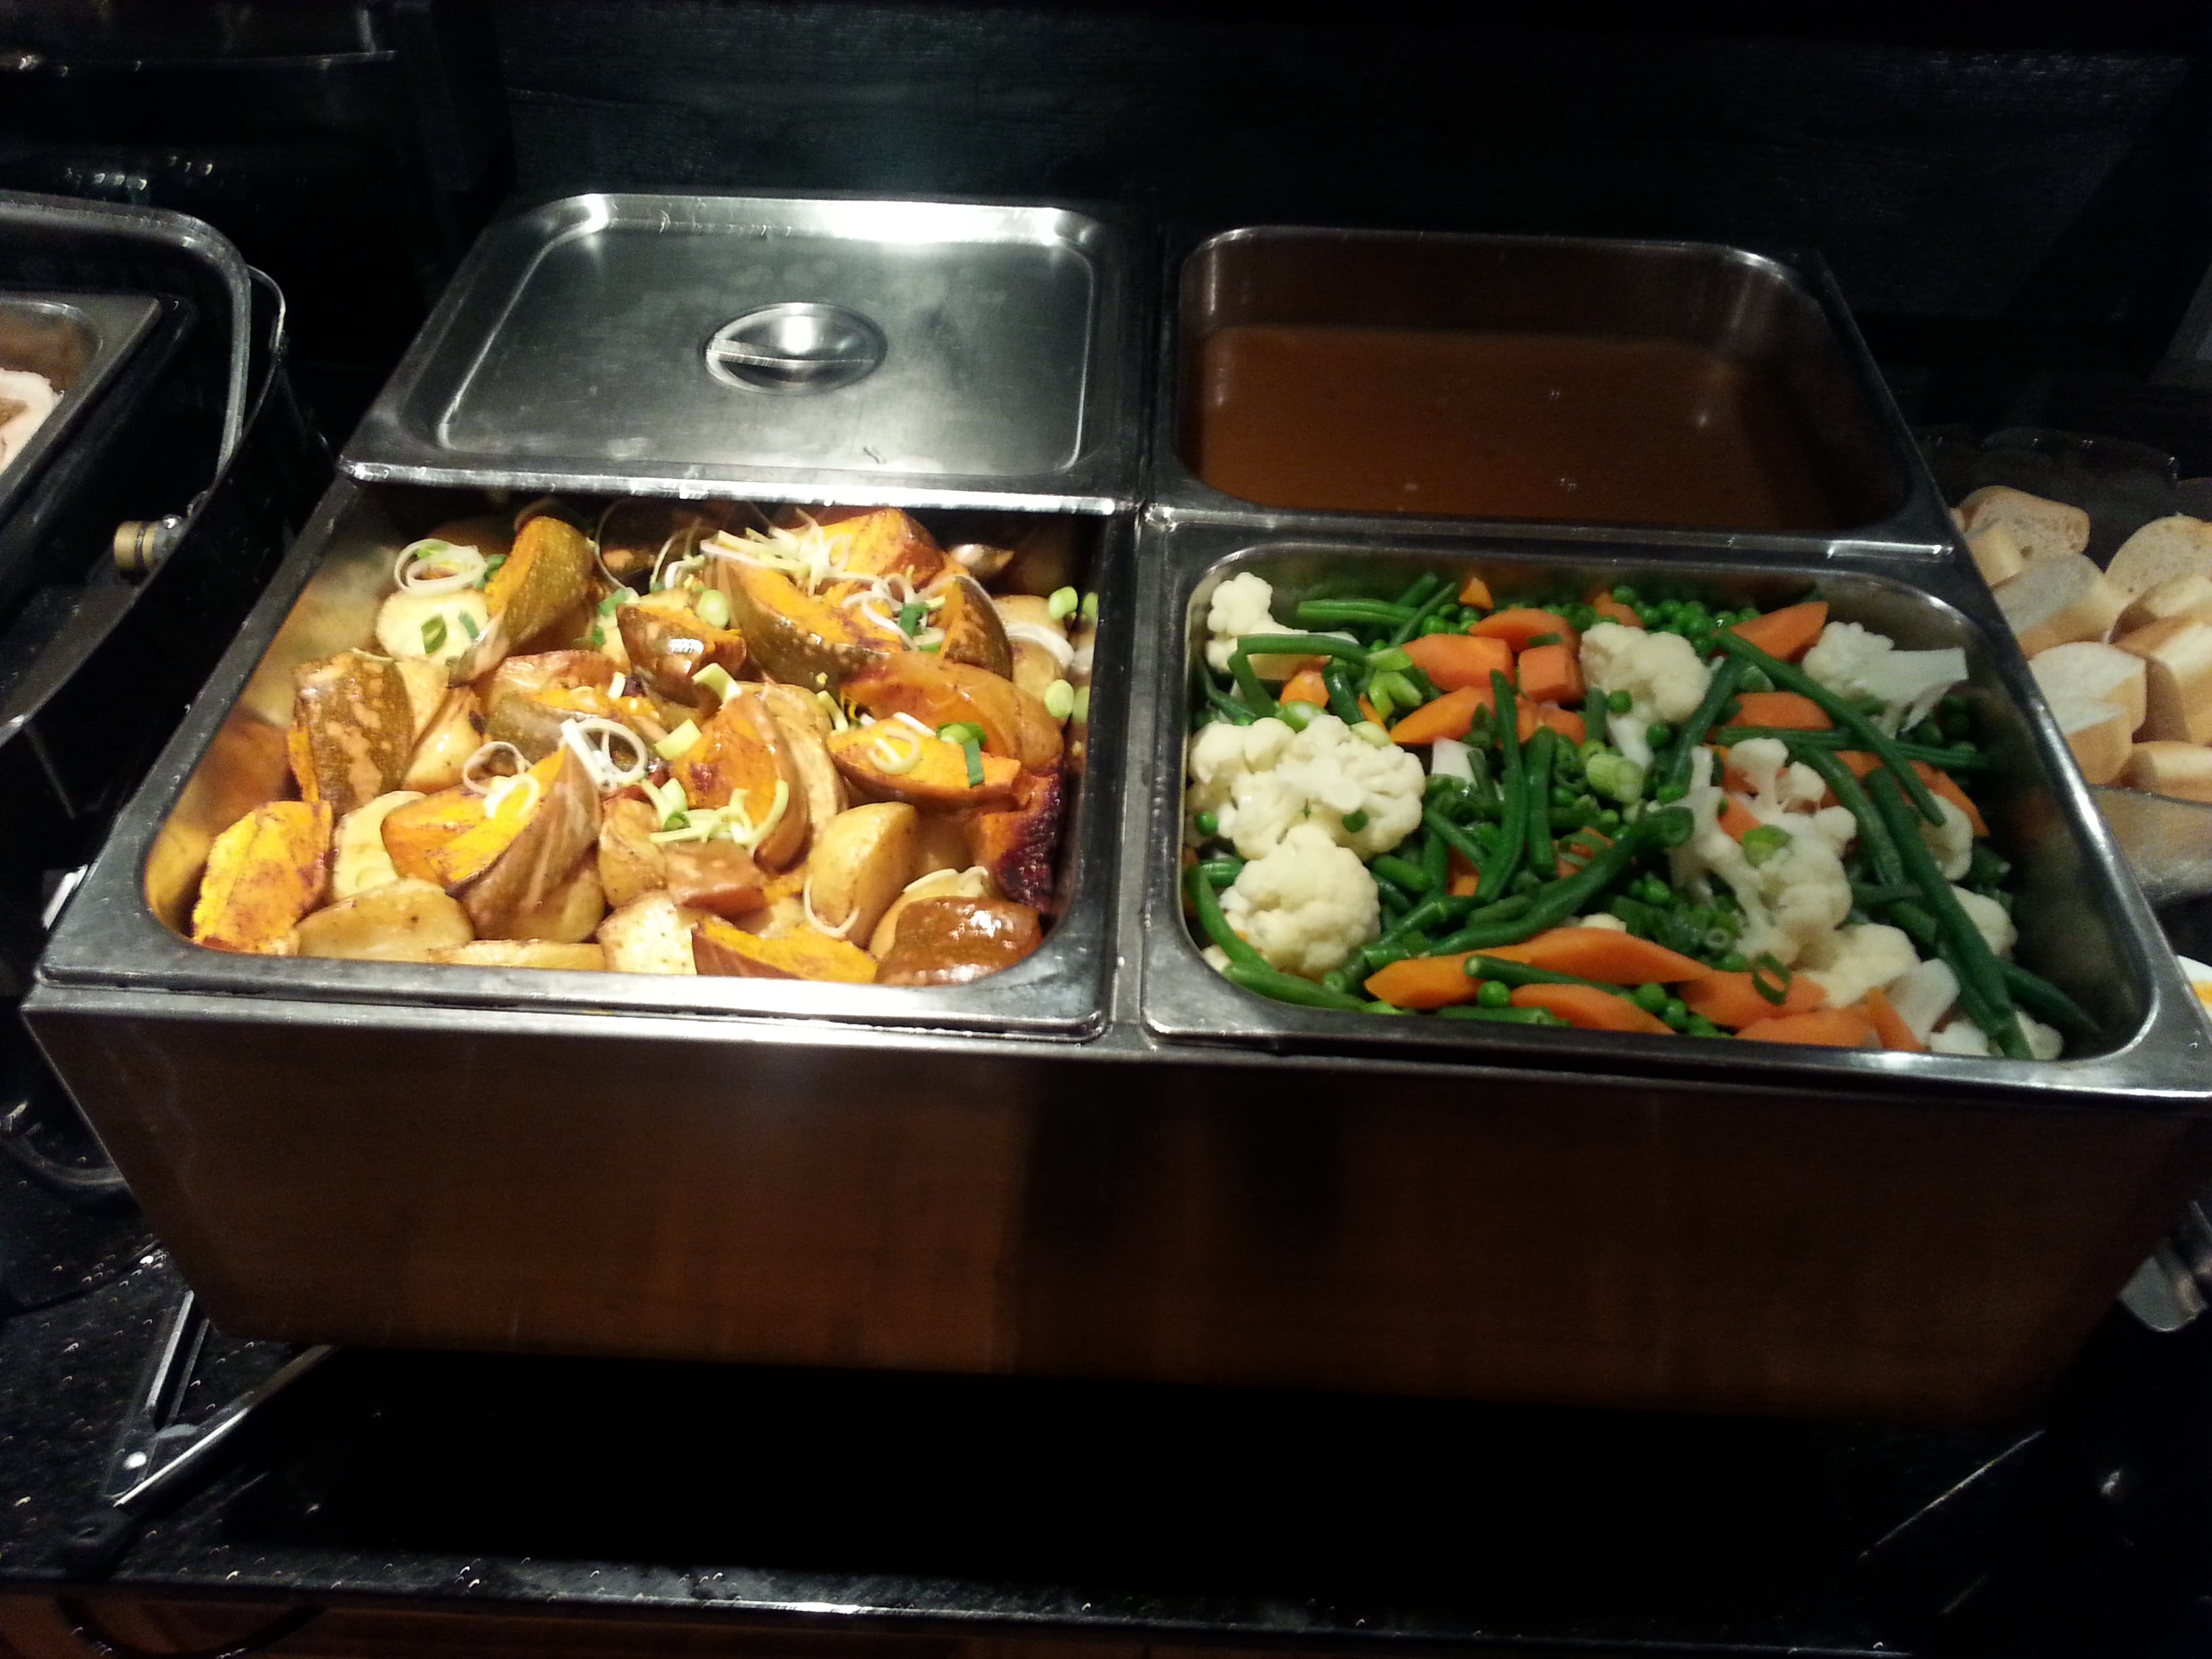 Amazing buffet meals and menu items available